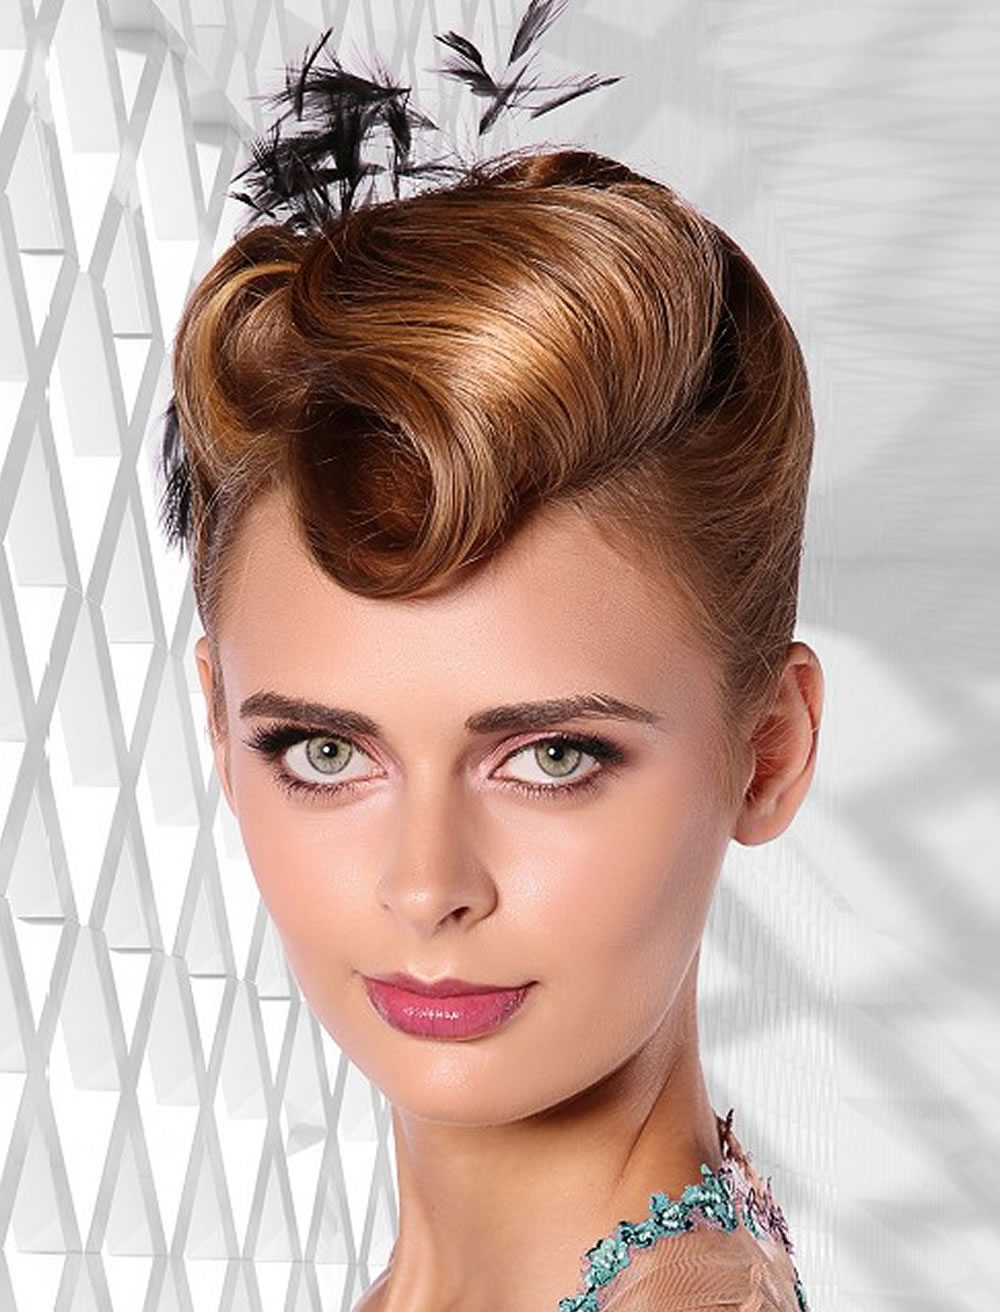 Updo Hairstyles For Round, Square Oval Faces 2018 - 2019 5